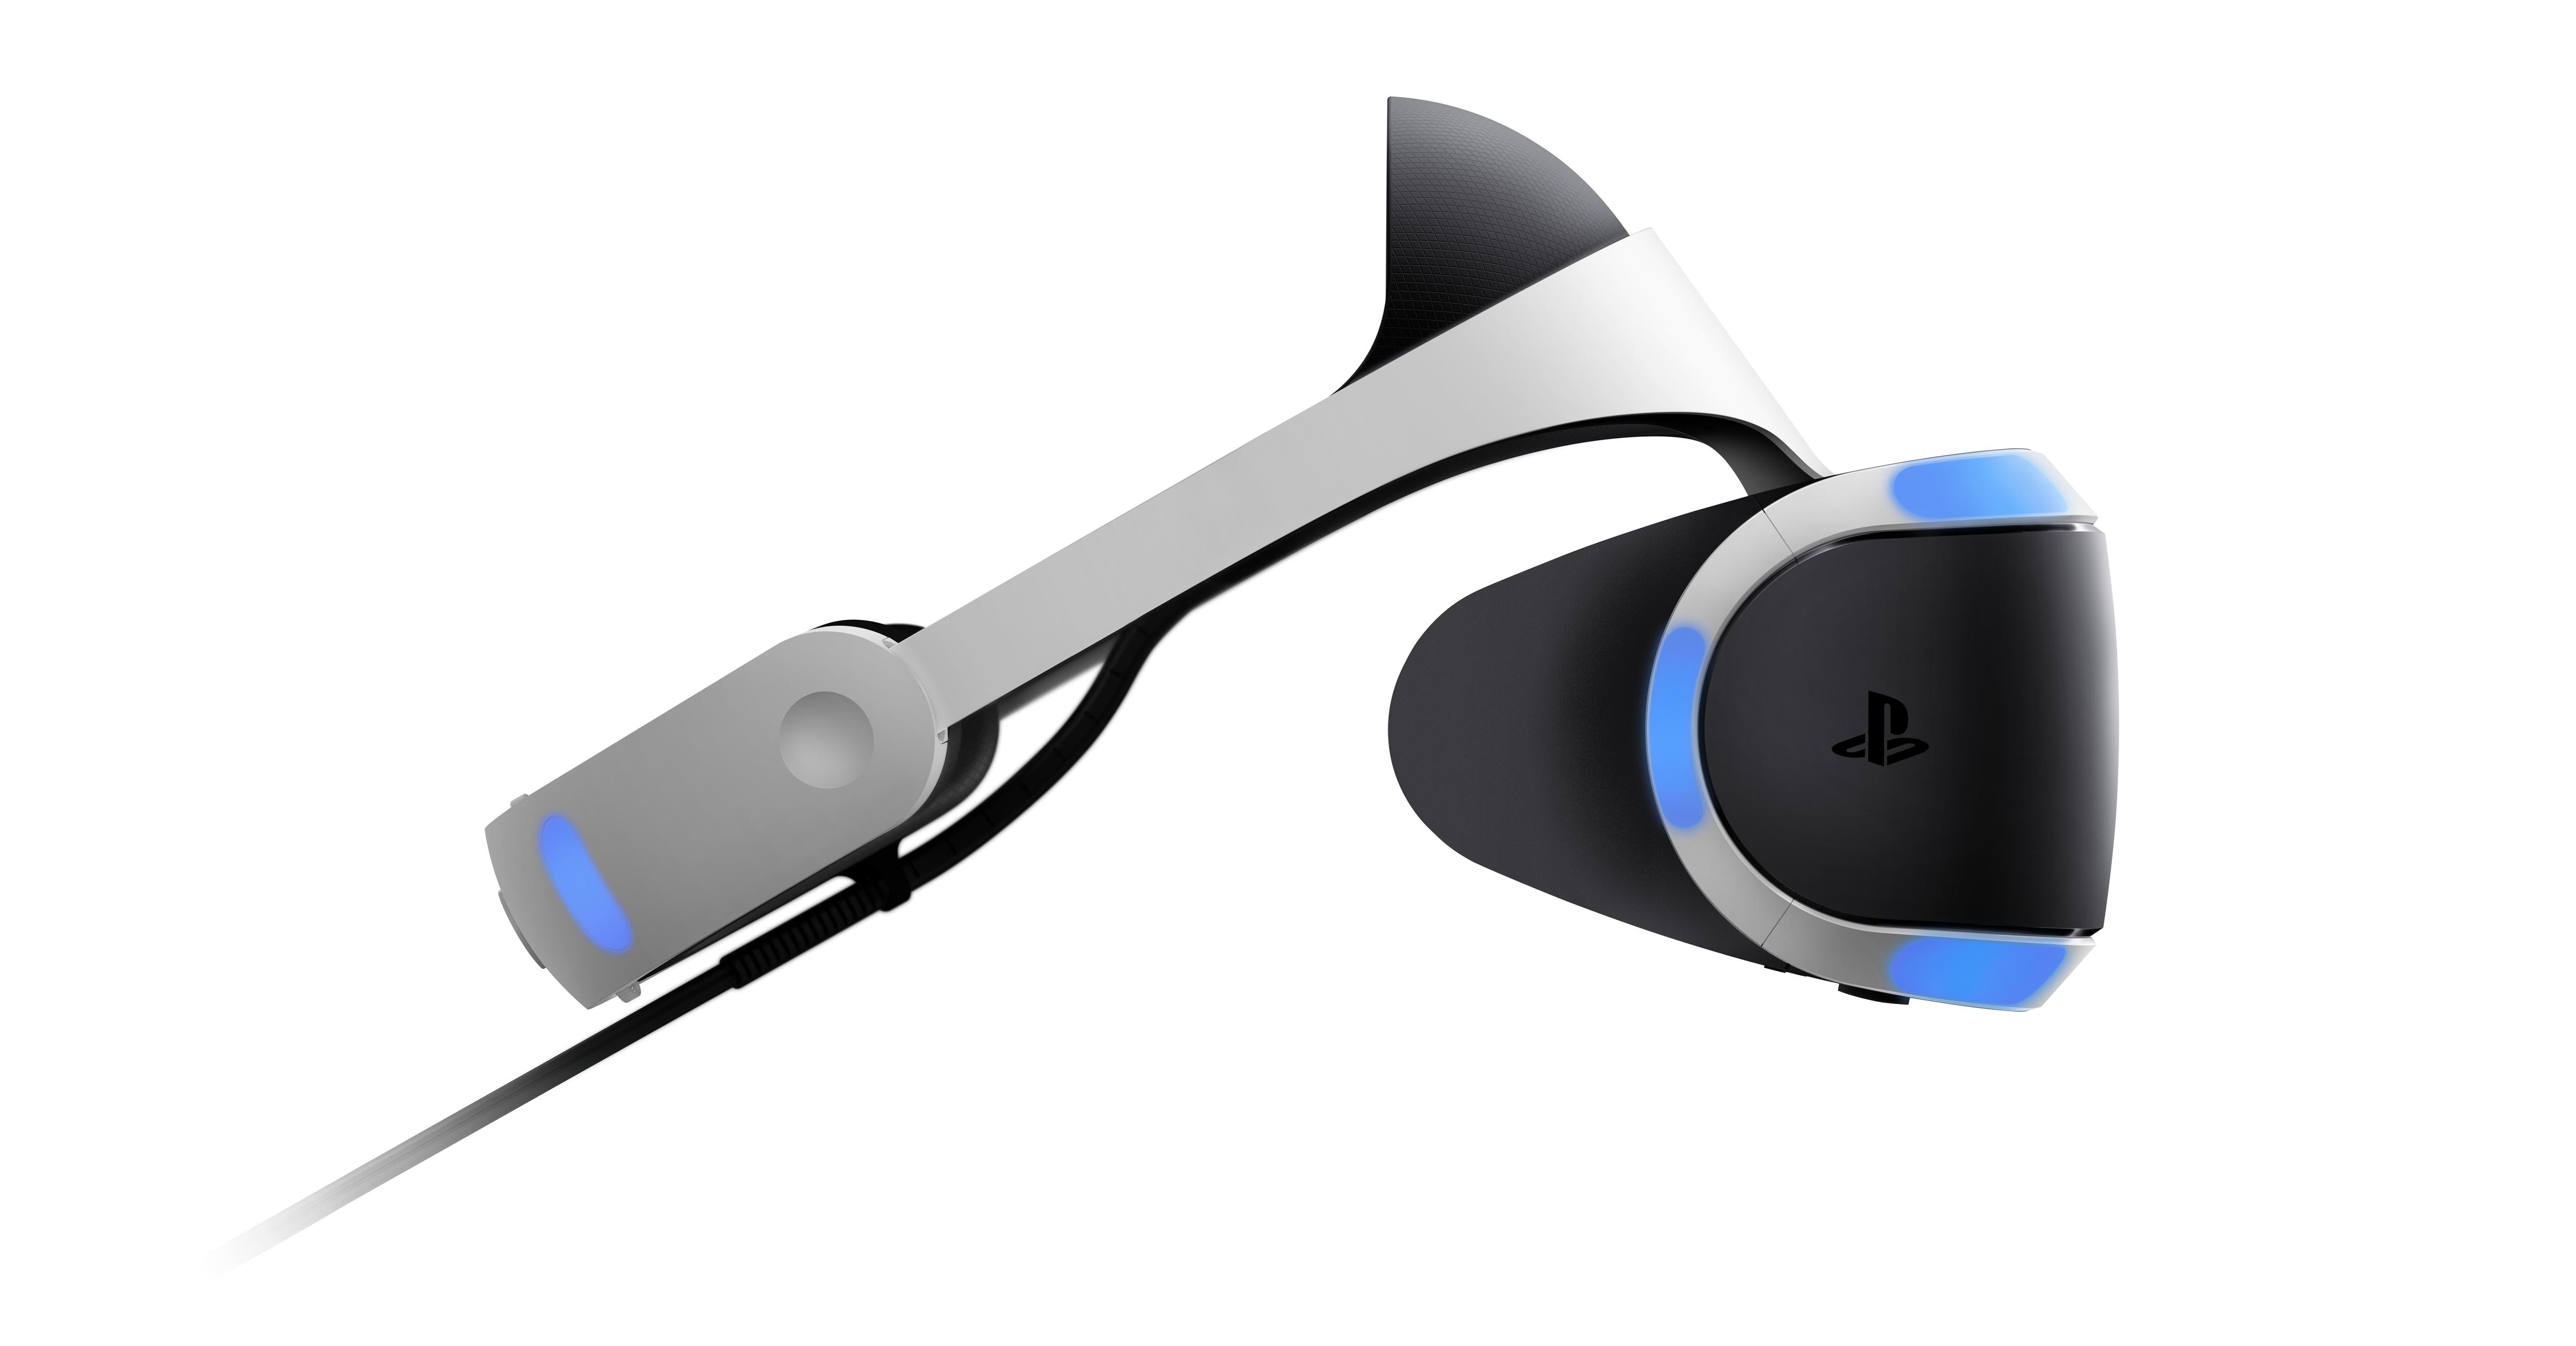 Playstation Vr Price Drop Why V2 Beats V1 And How To Tell Them Apart